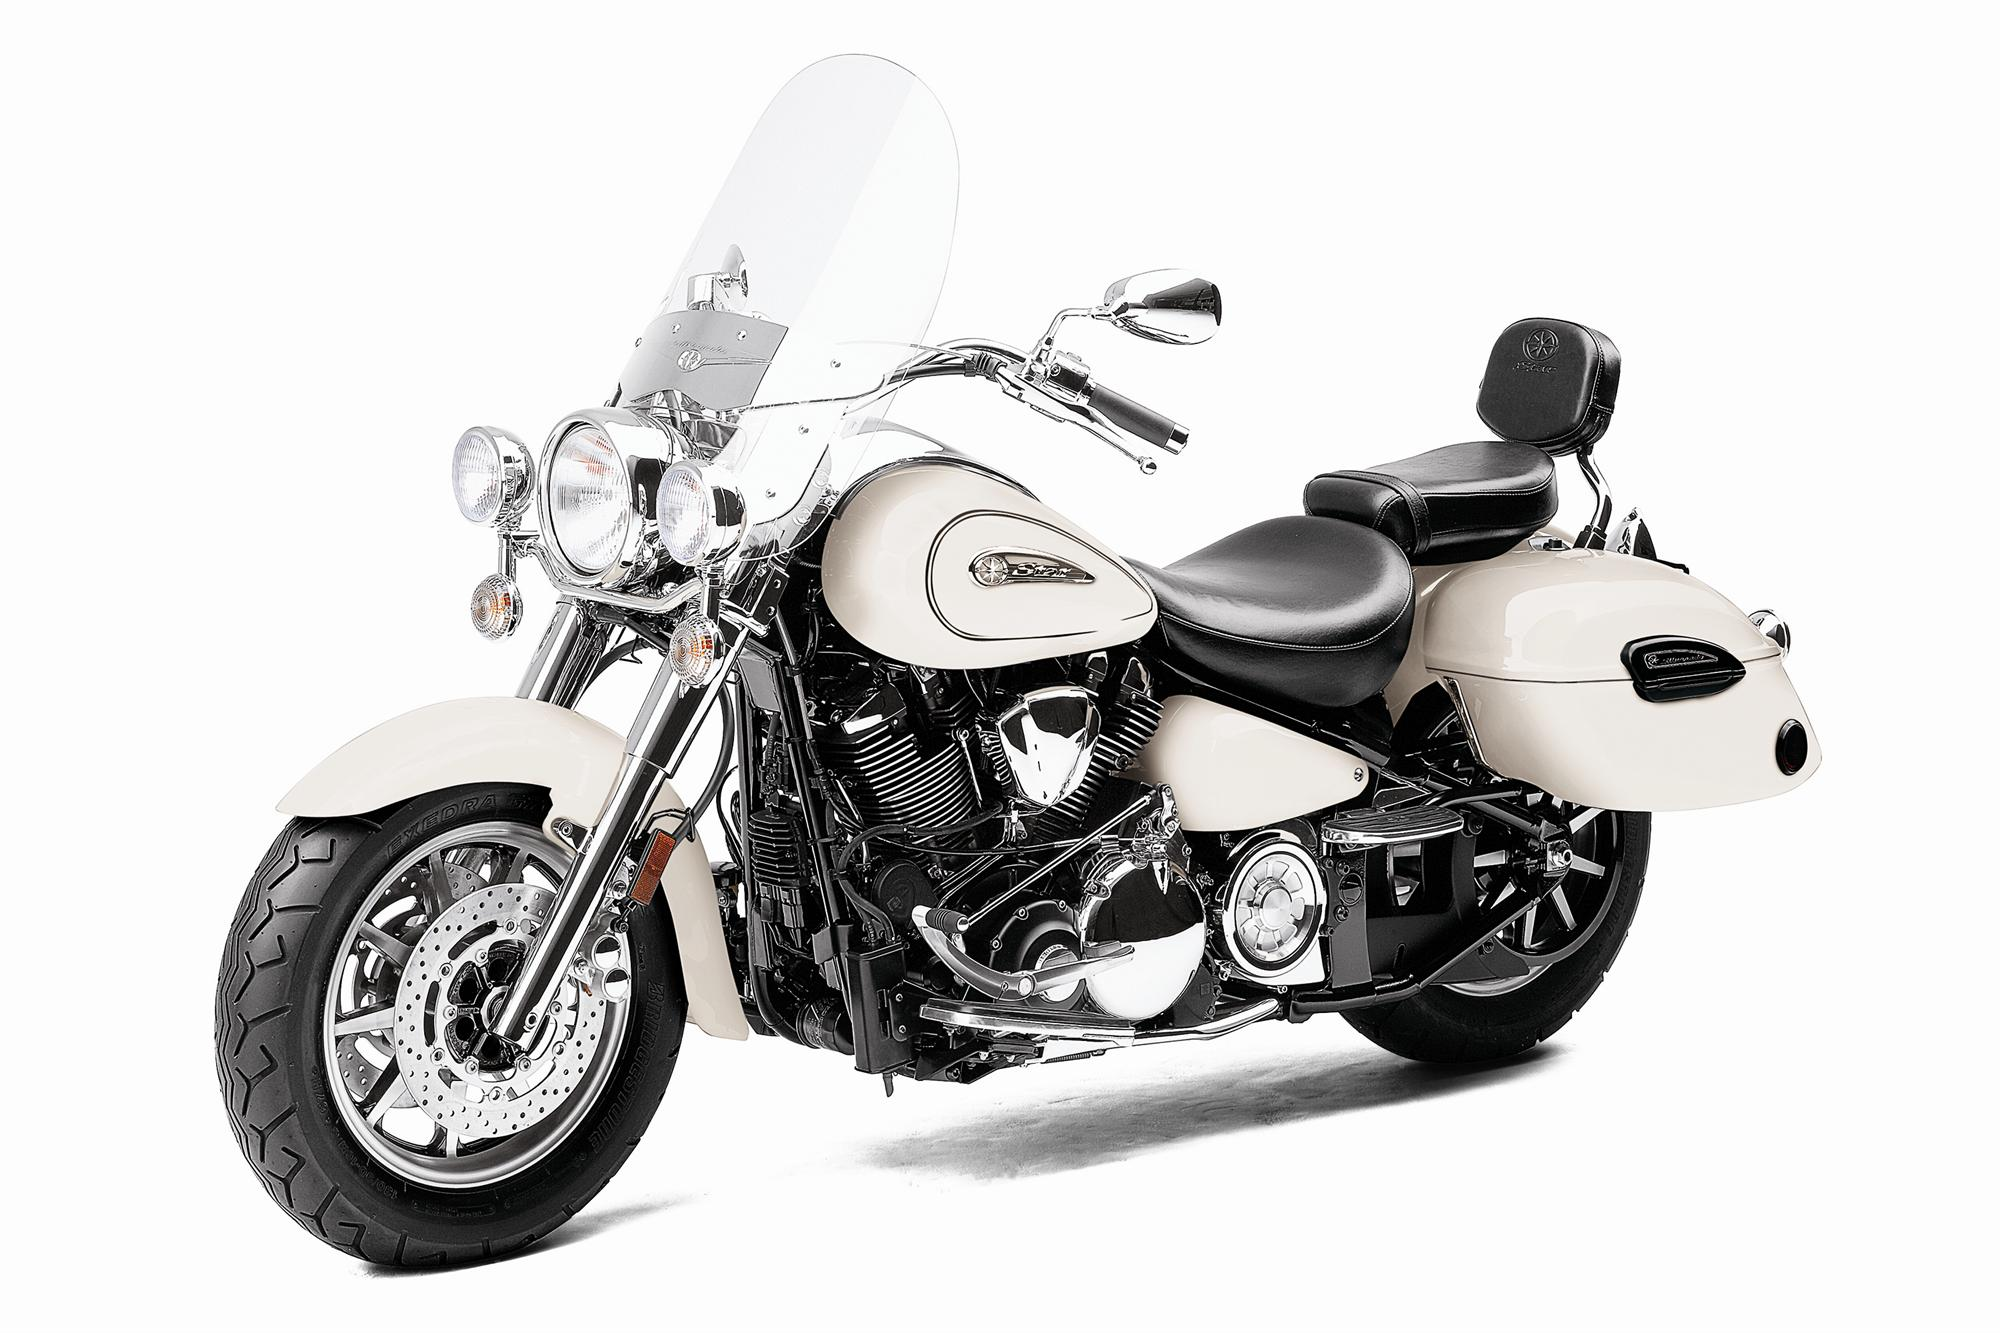 Yamaha Road Star S 2011 #5